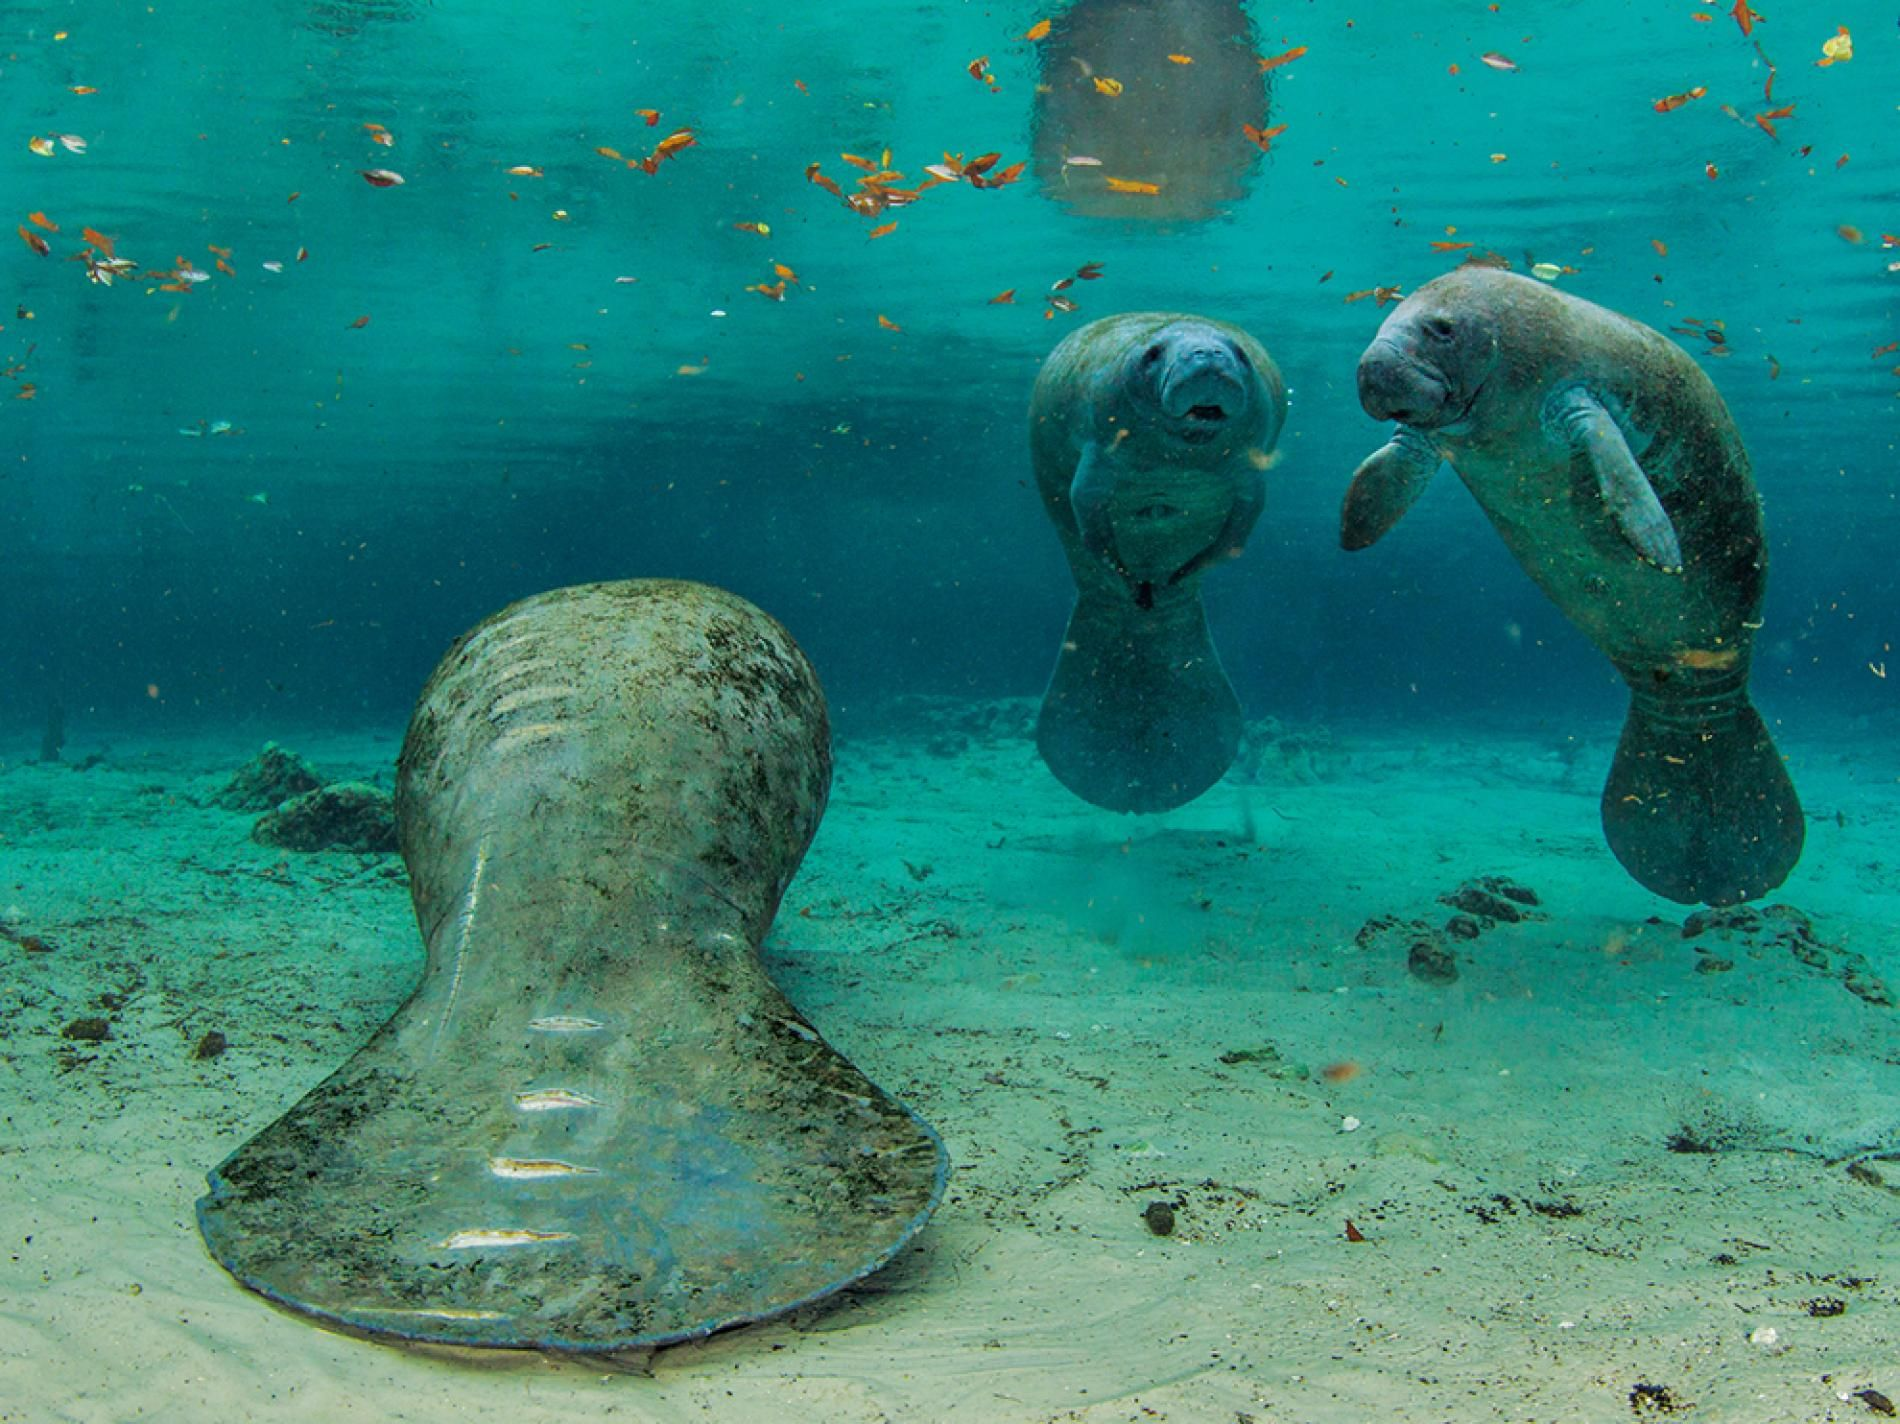 Manatee Picture Underwater Wallpaper National Geographic Photo Of The Day Manatee Pictures Manatee Manatee Florida